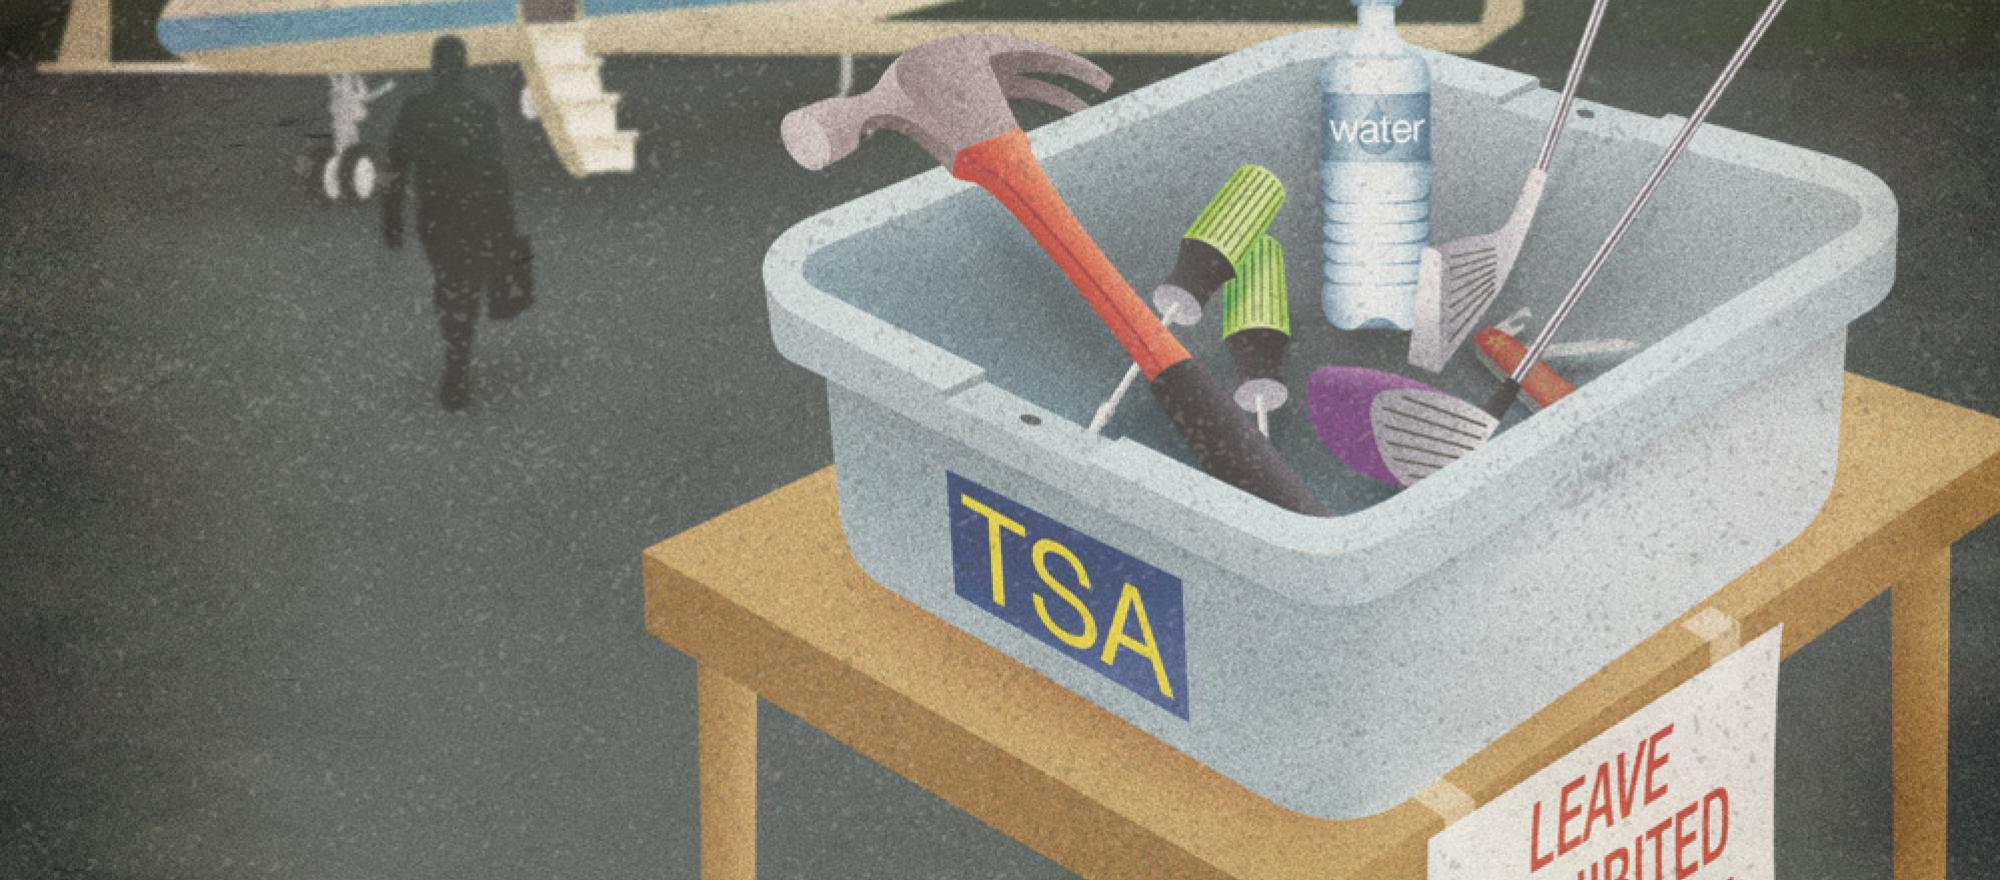 TSA Prohibited Items Bin.